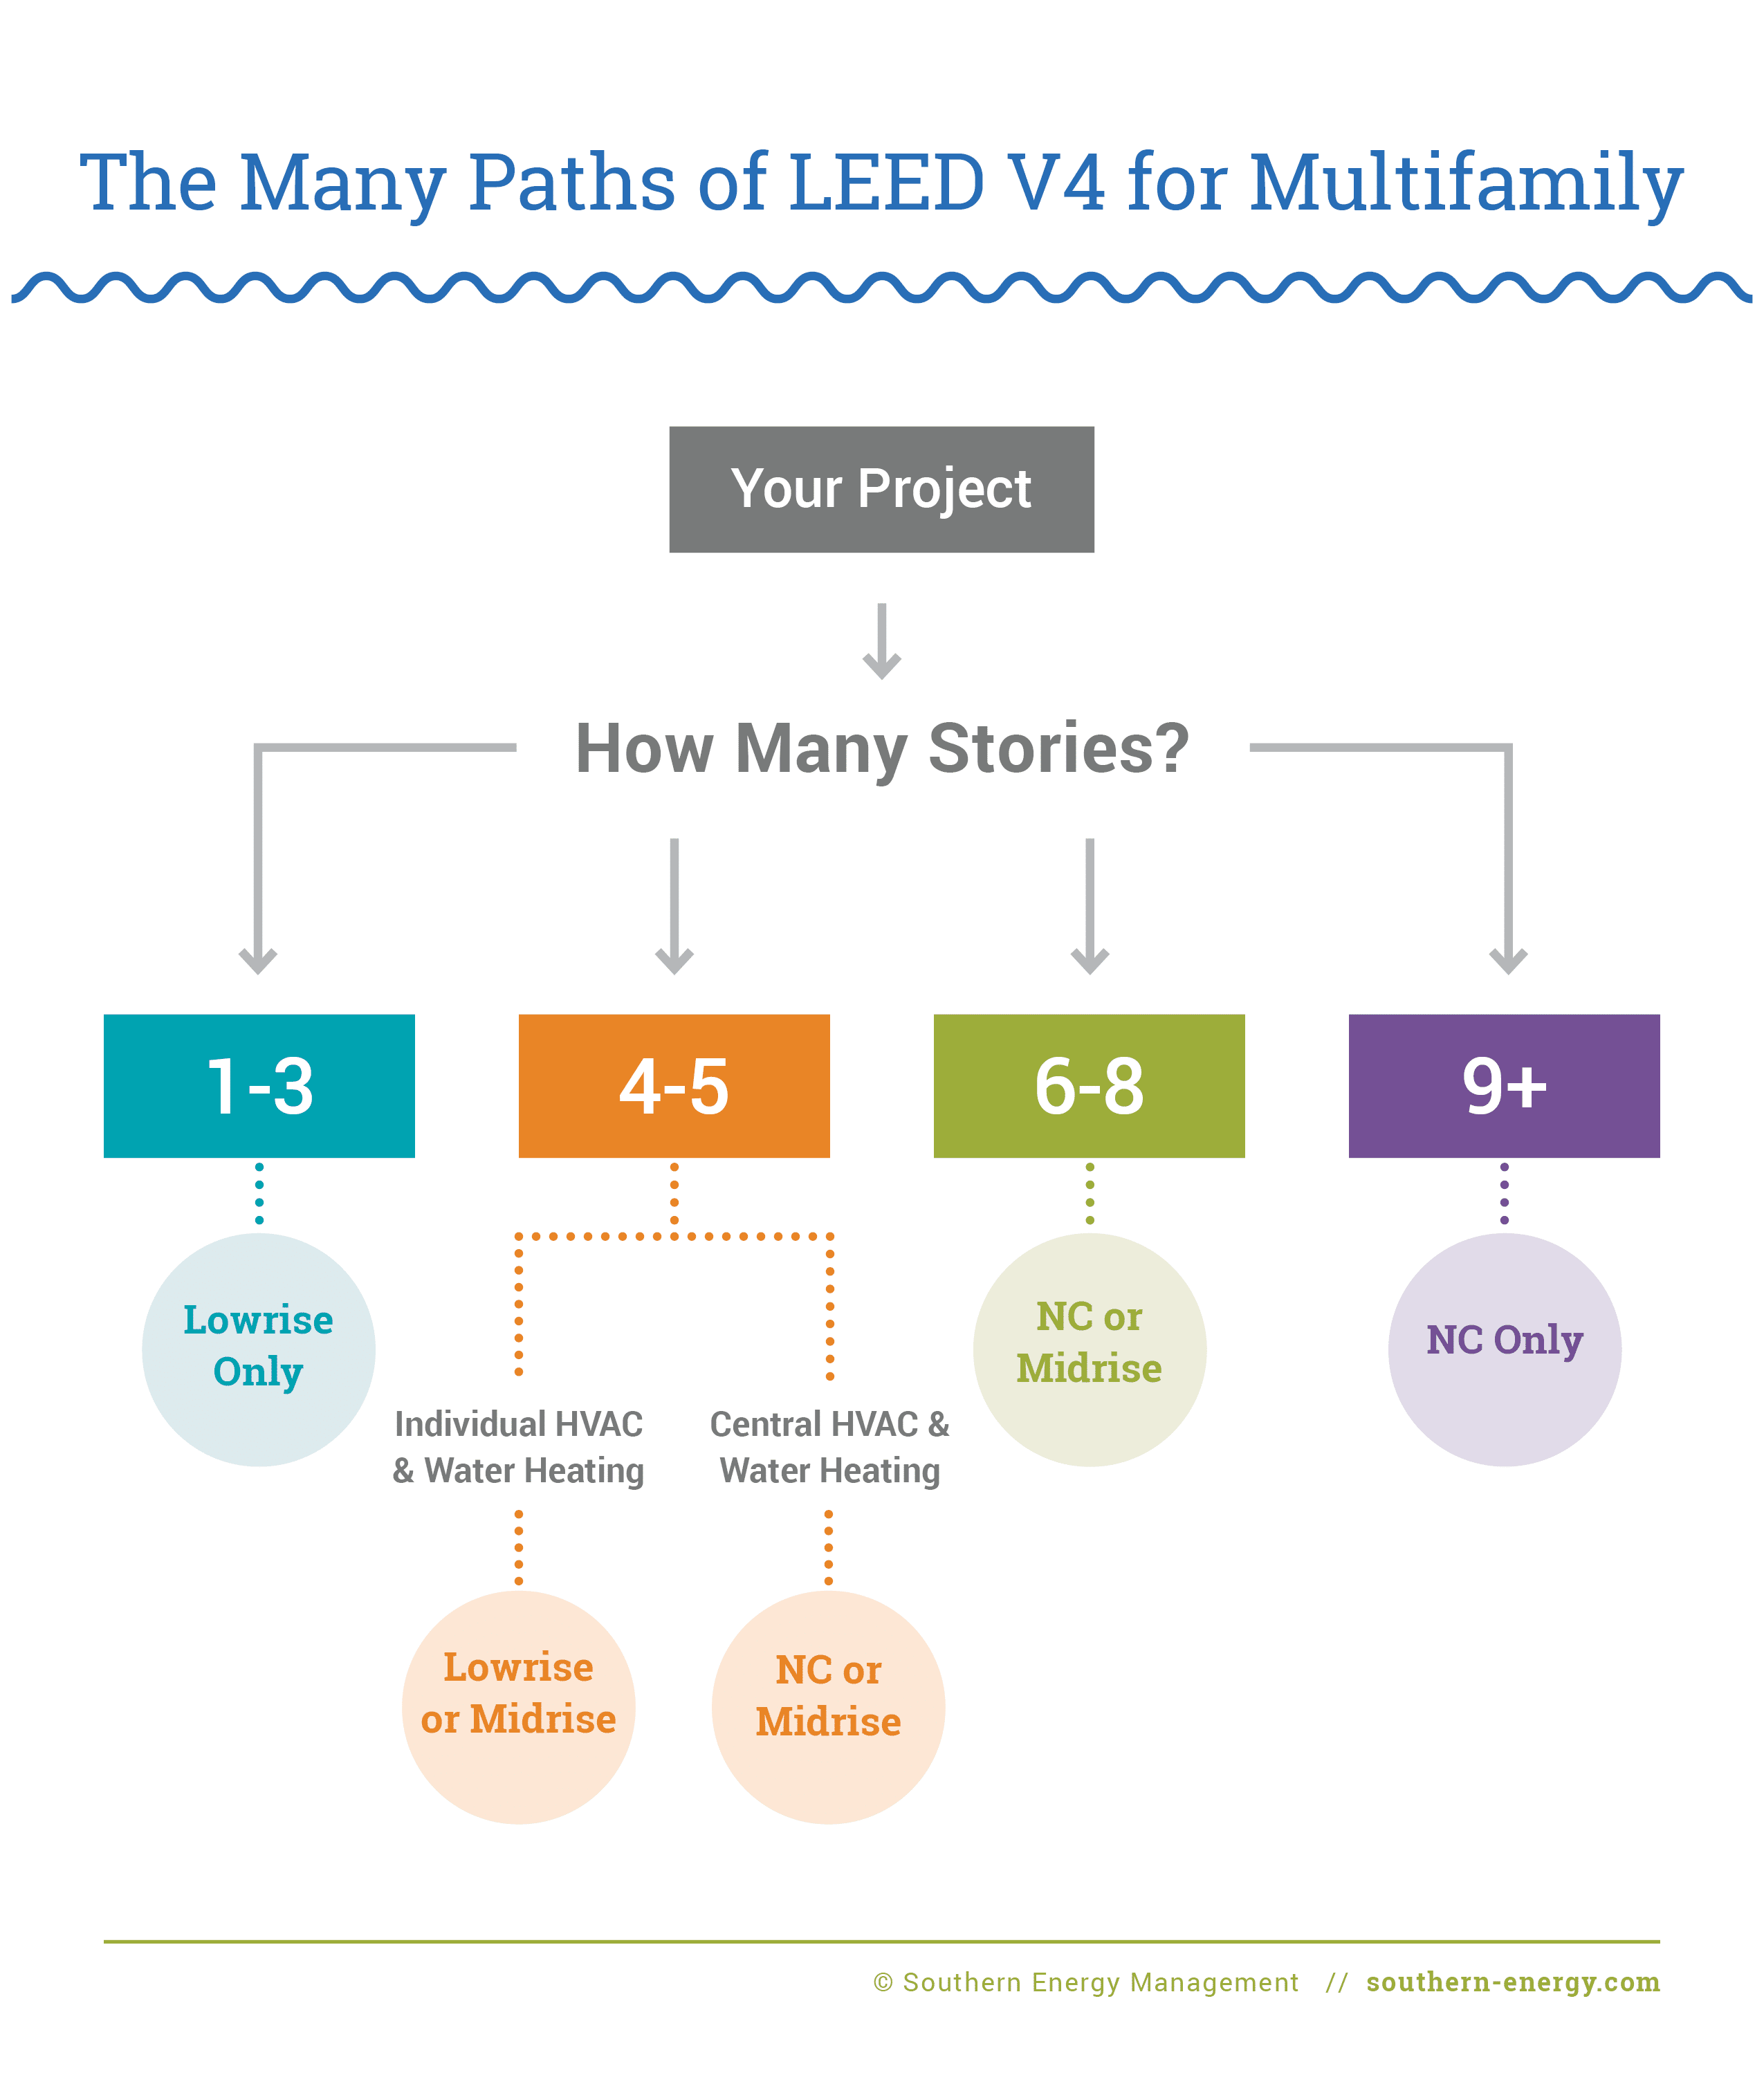 The Many Paths of LEED V4 for Multifamily | Southern Energy Management